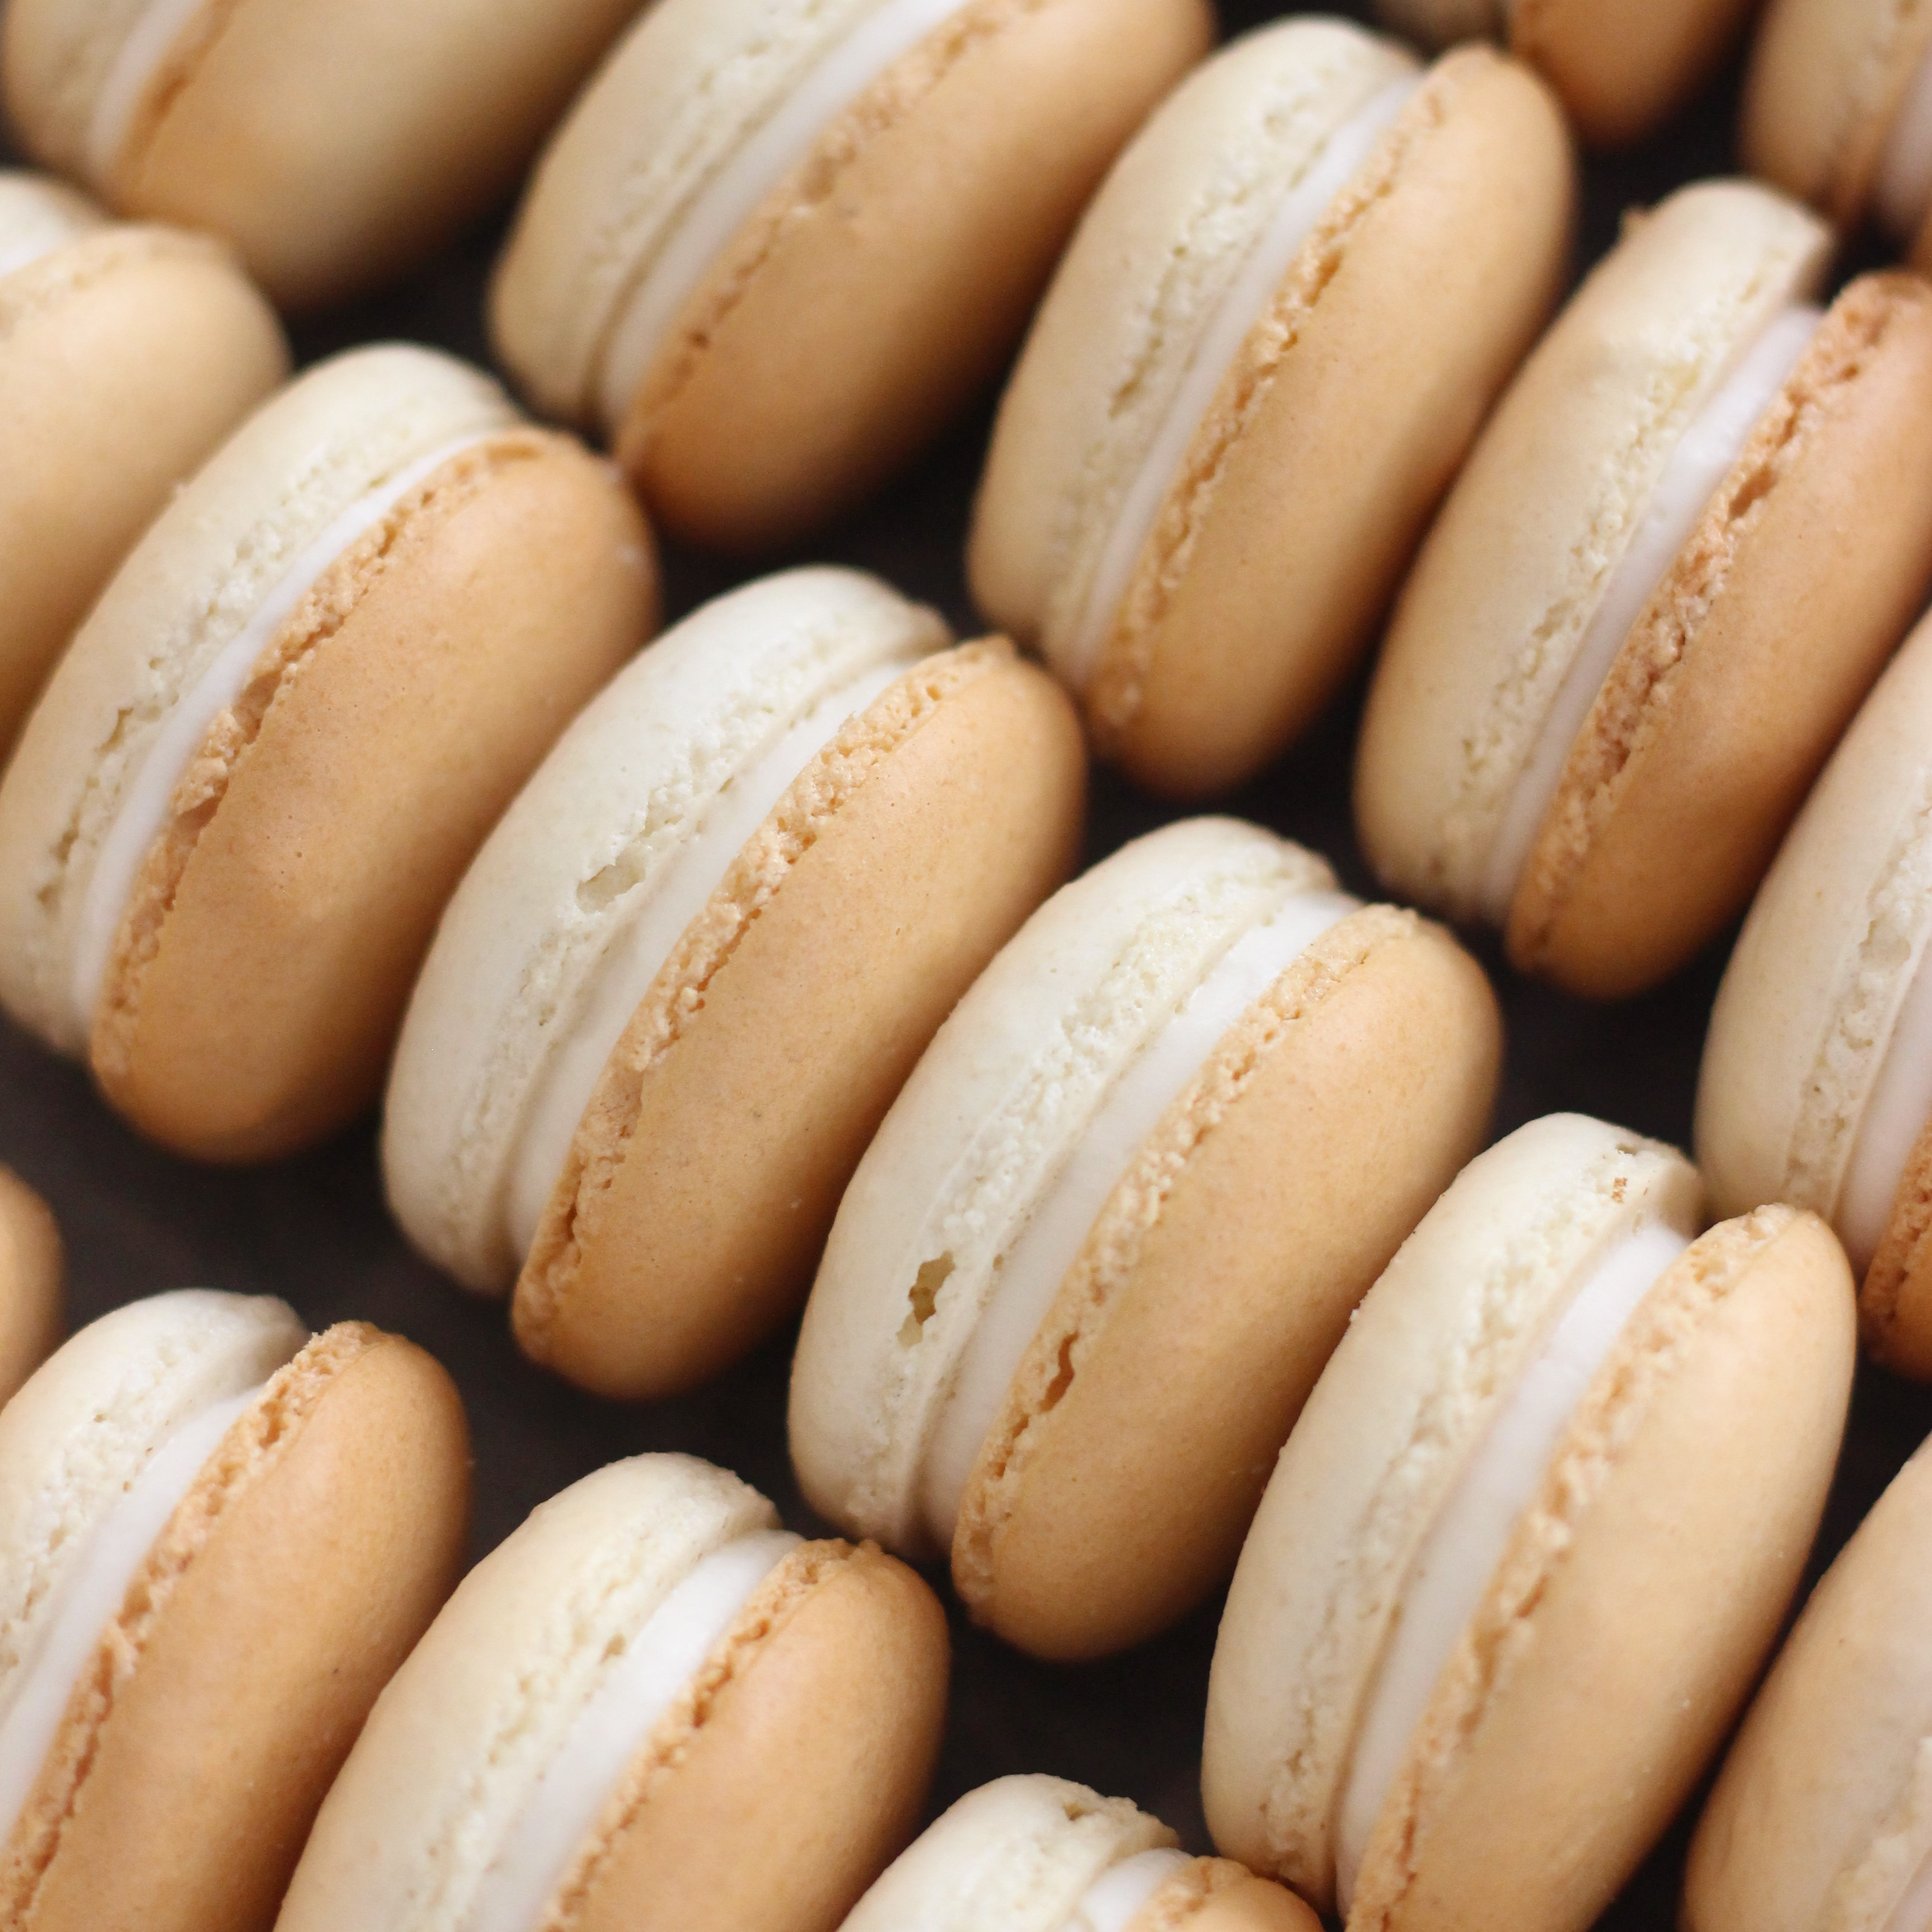 vanilla bean macarons from french bakery in sussex county nj